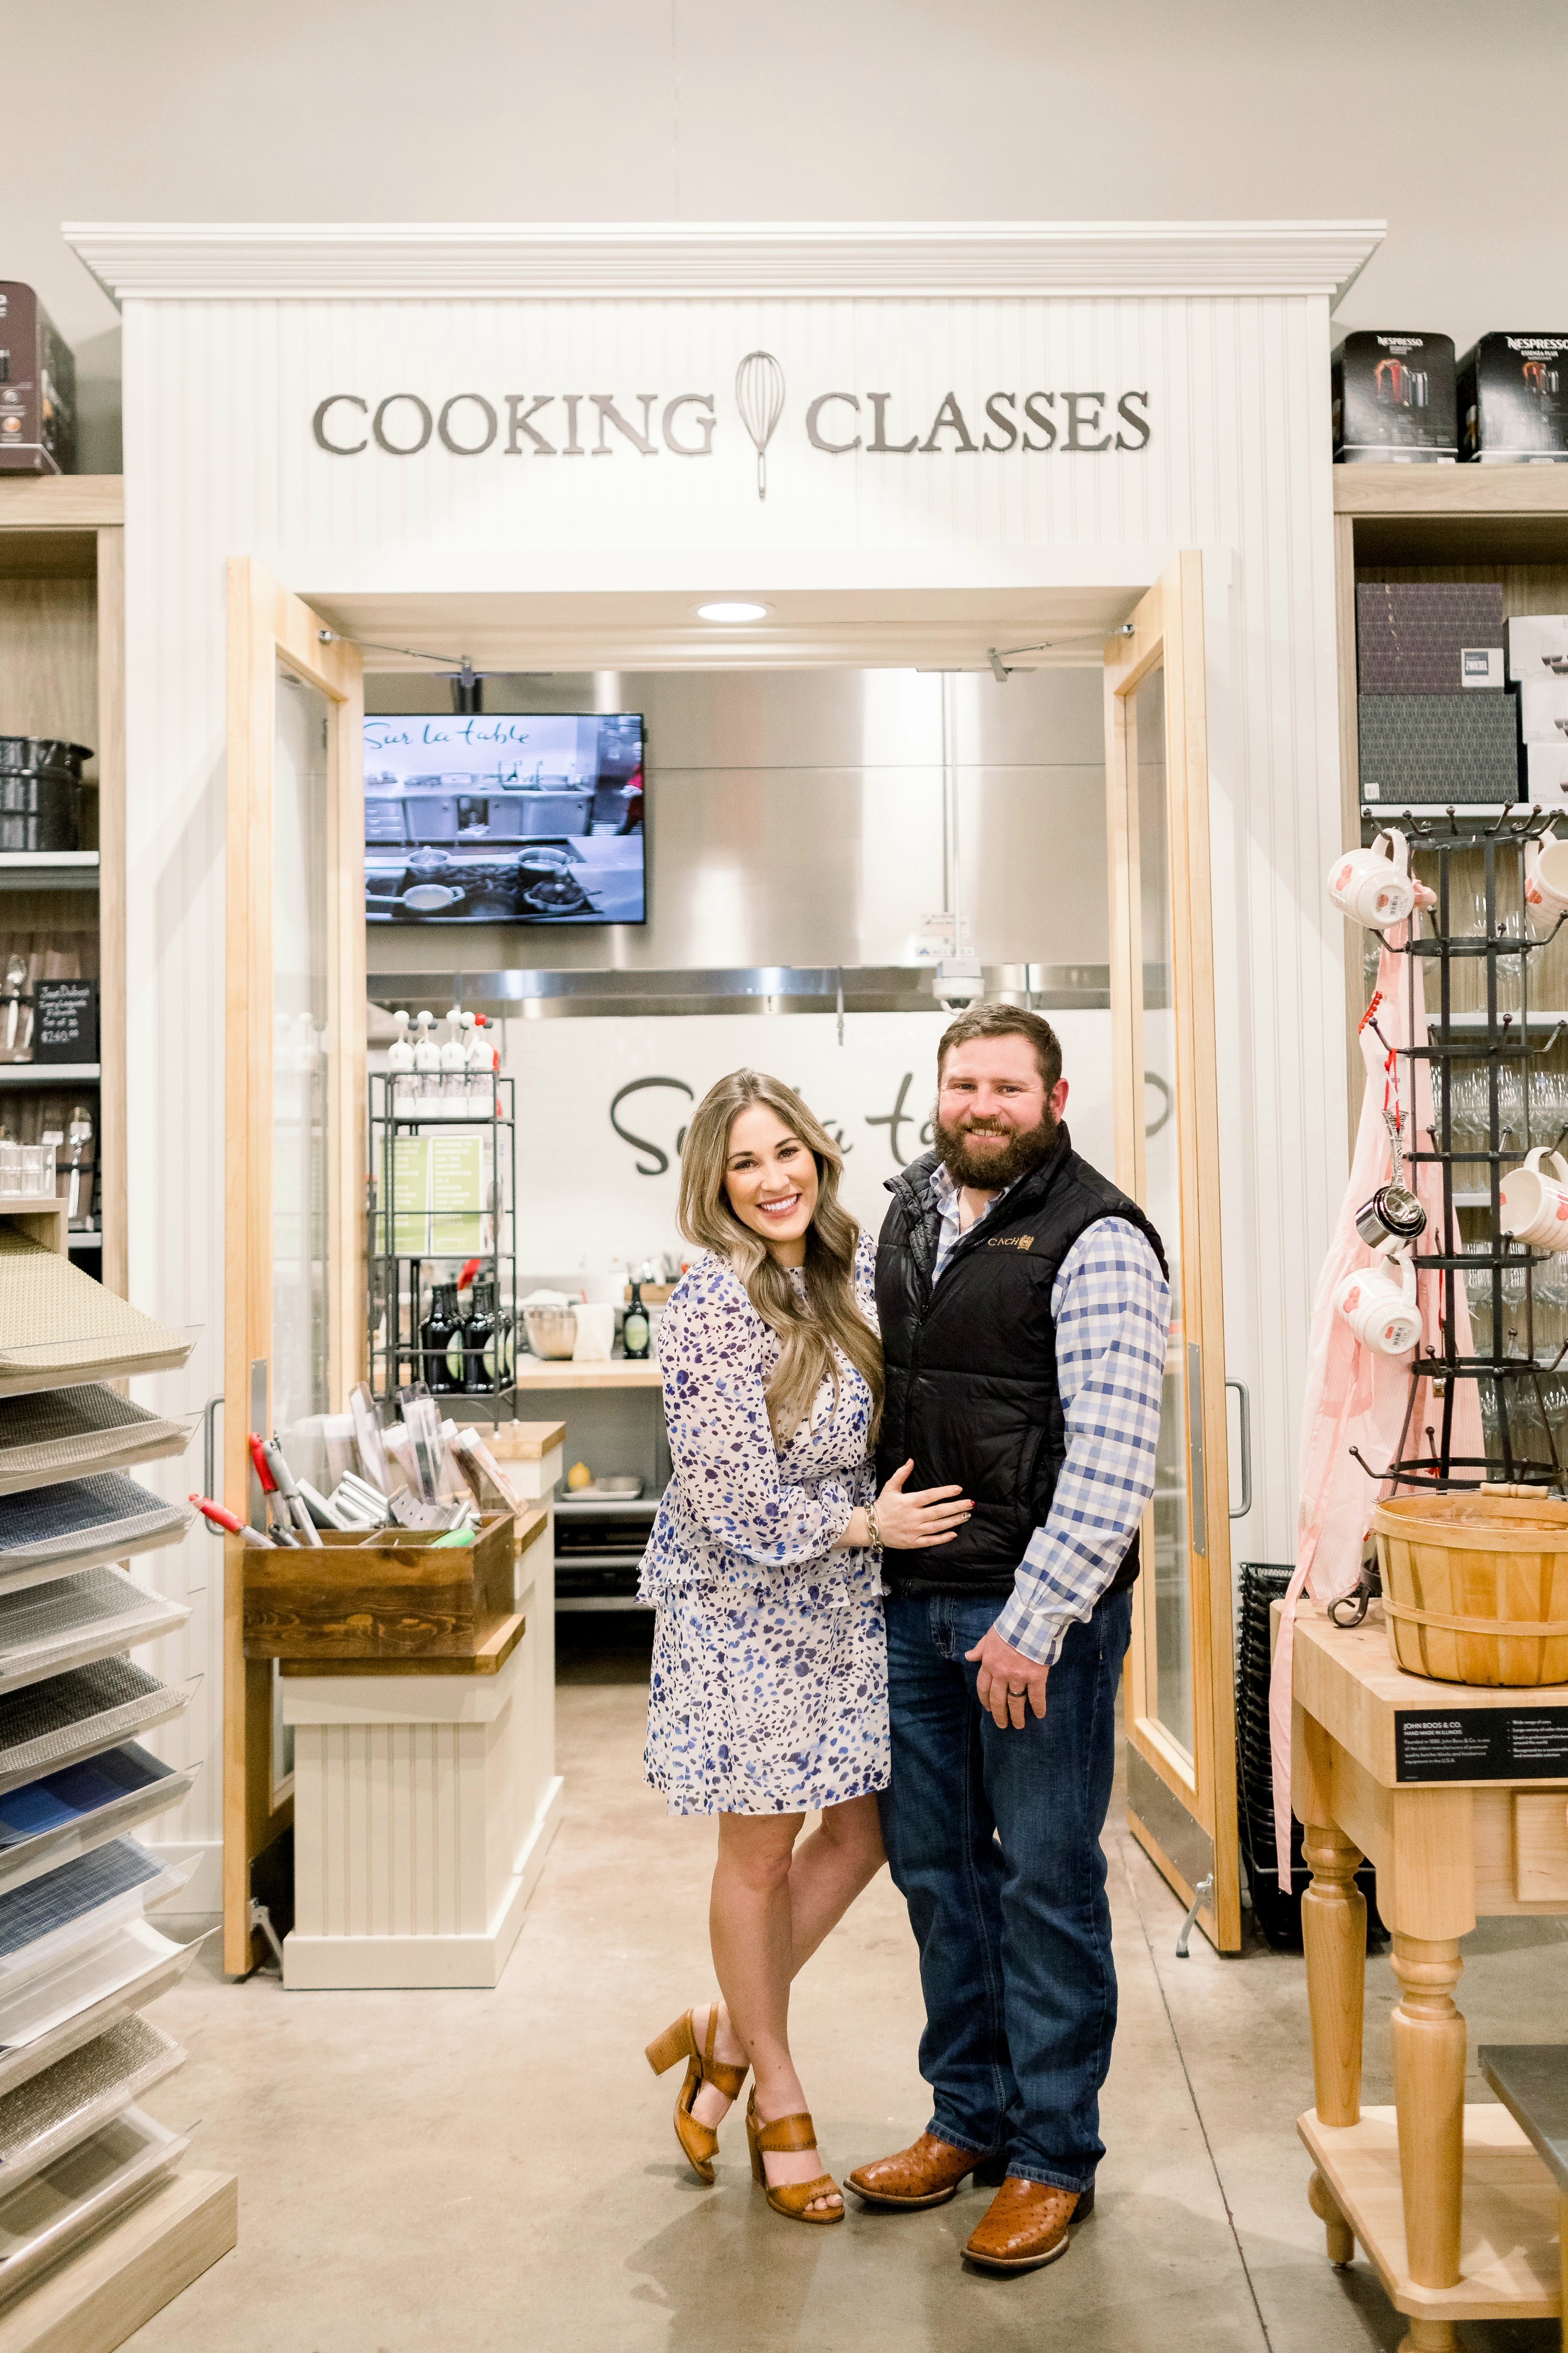 Sur la Table Cooking Class review featured by top Memphis lifestyle blog, Walking in Memphis in High Heels.